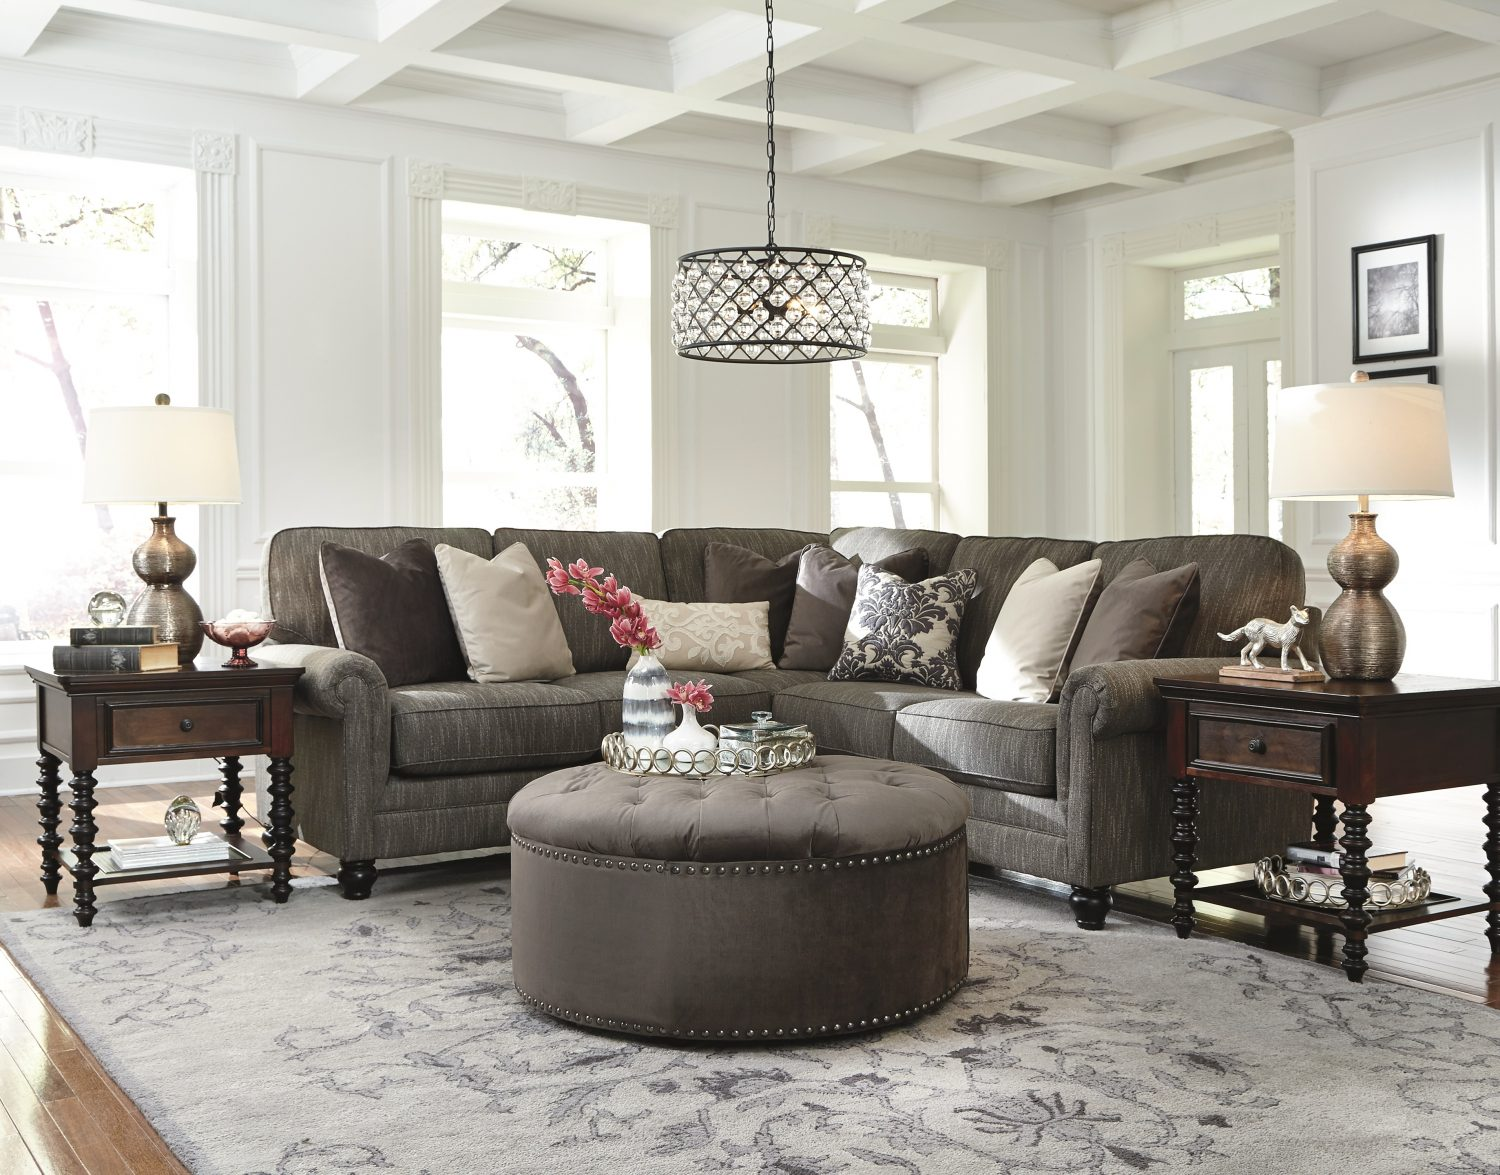 Going Gray is the Stylish Way to Go Ashley Furniture